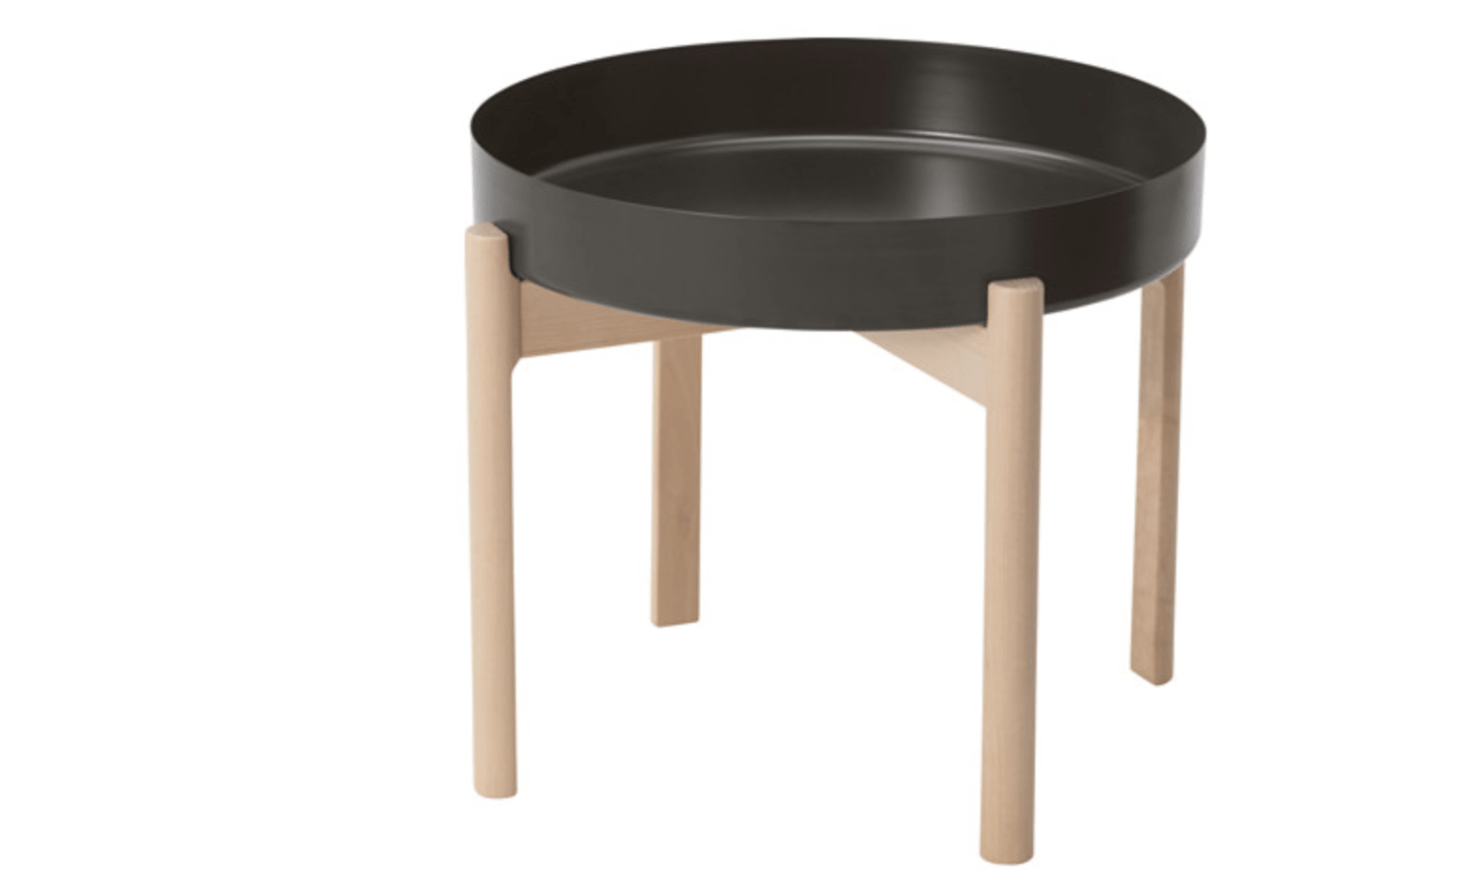 Designed By Hay For Ikea The Ypperlig Coffee Table Has A Birch Base And